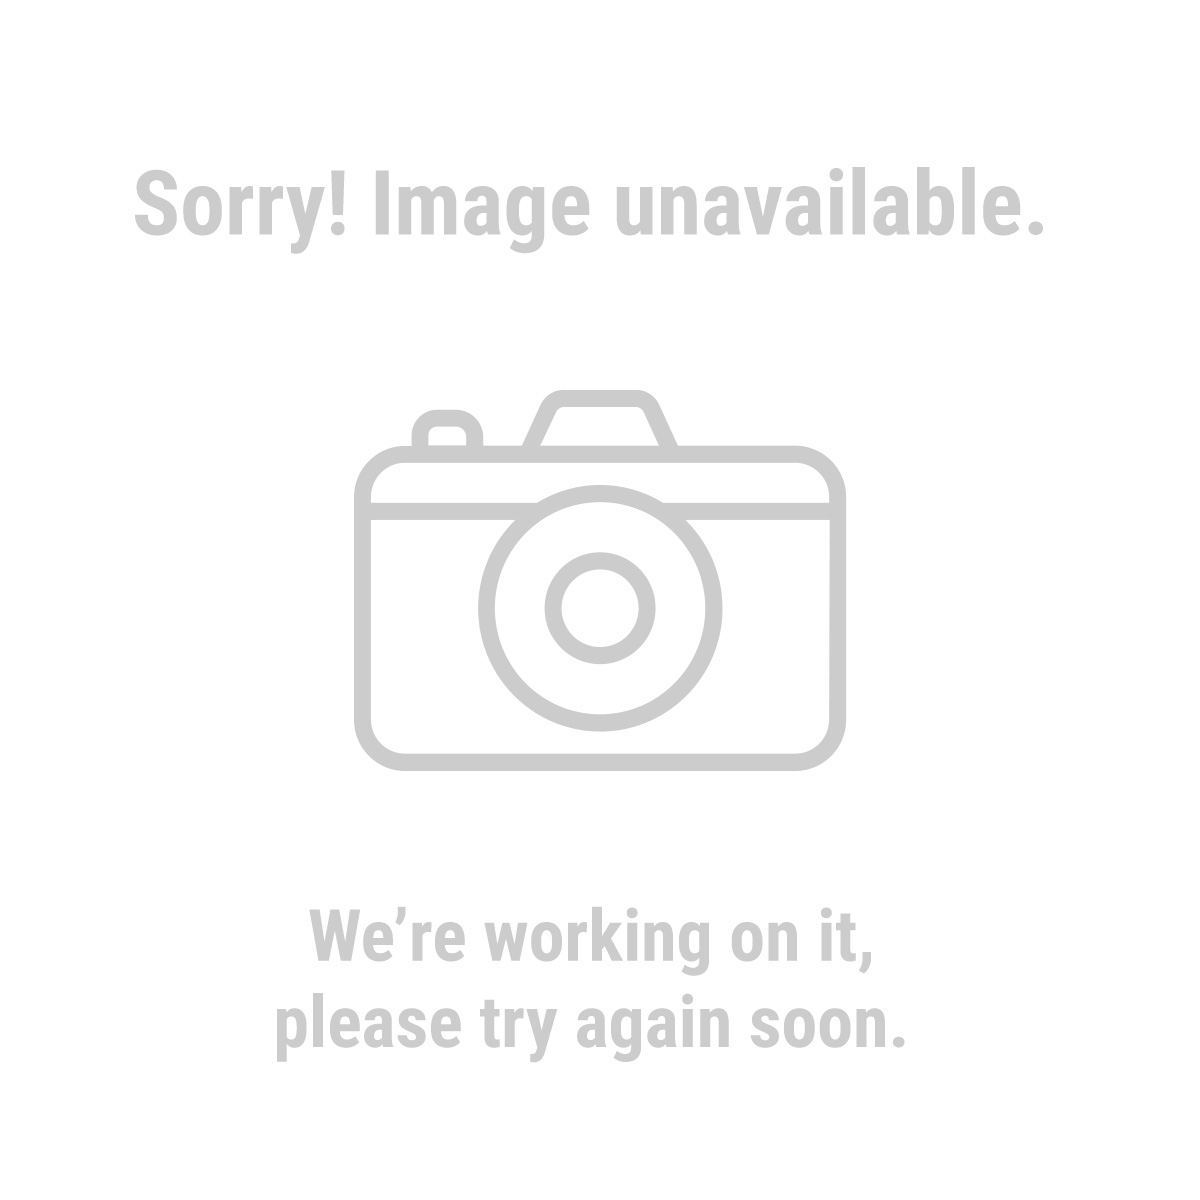 HFT 60464 11 ft. 4 in. x 23 ft. 4 in. All Purpose Weather Resistant Tarp